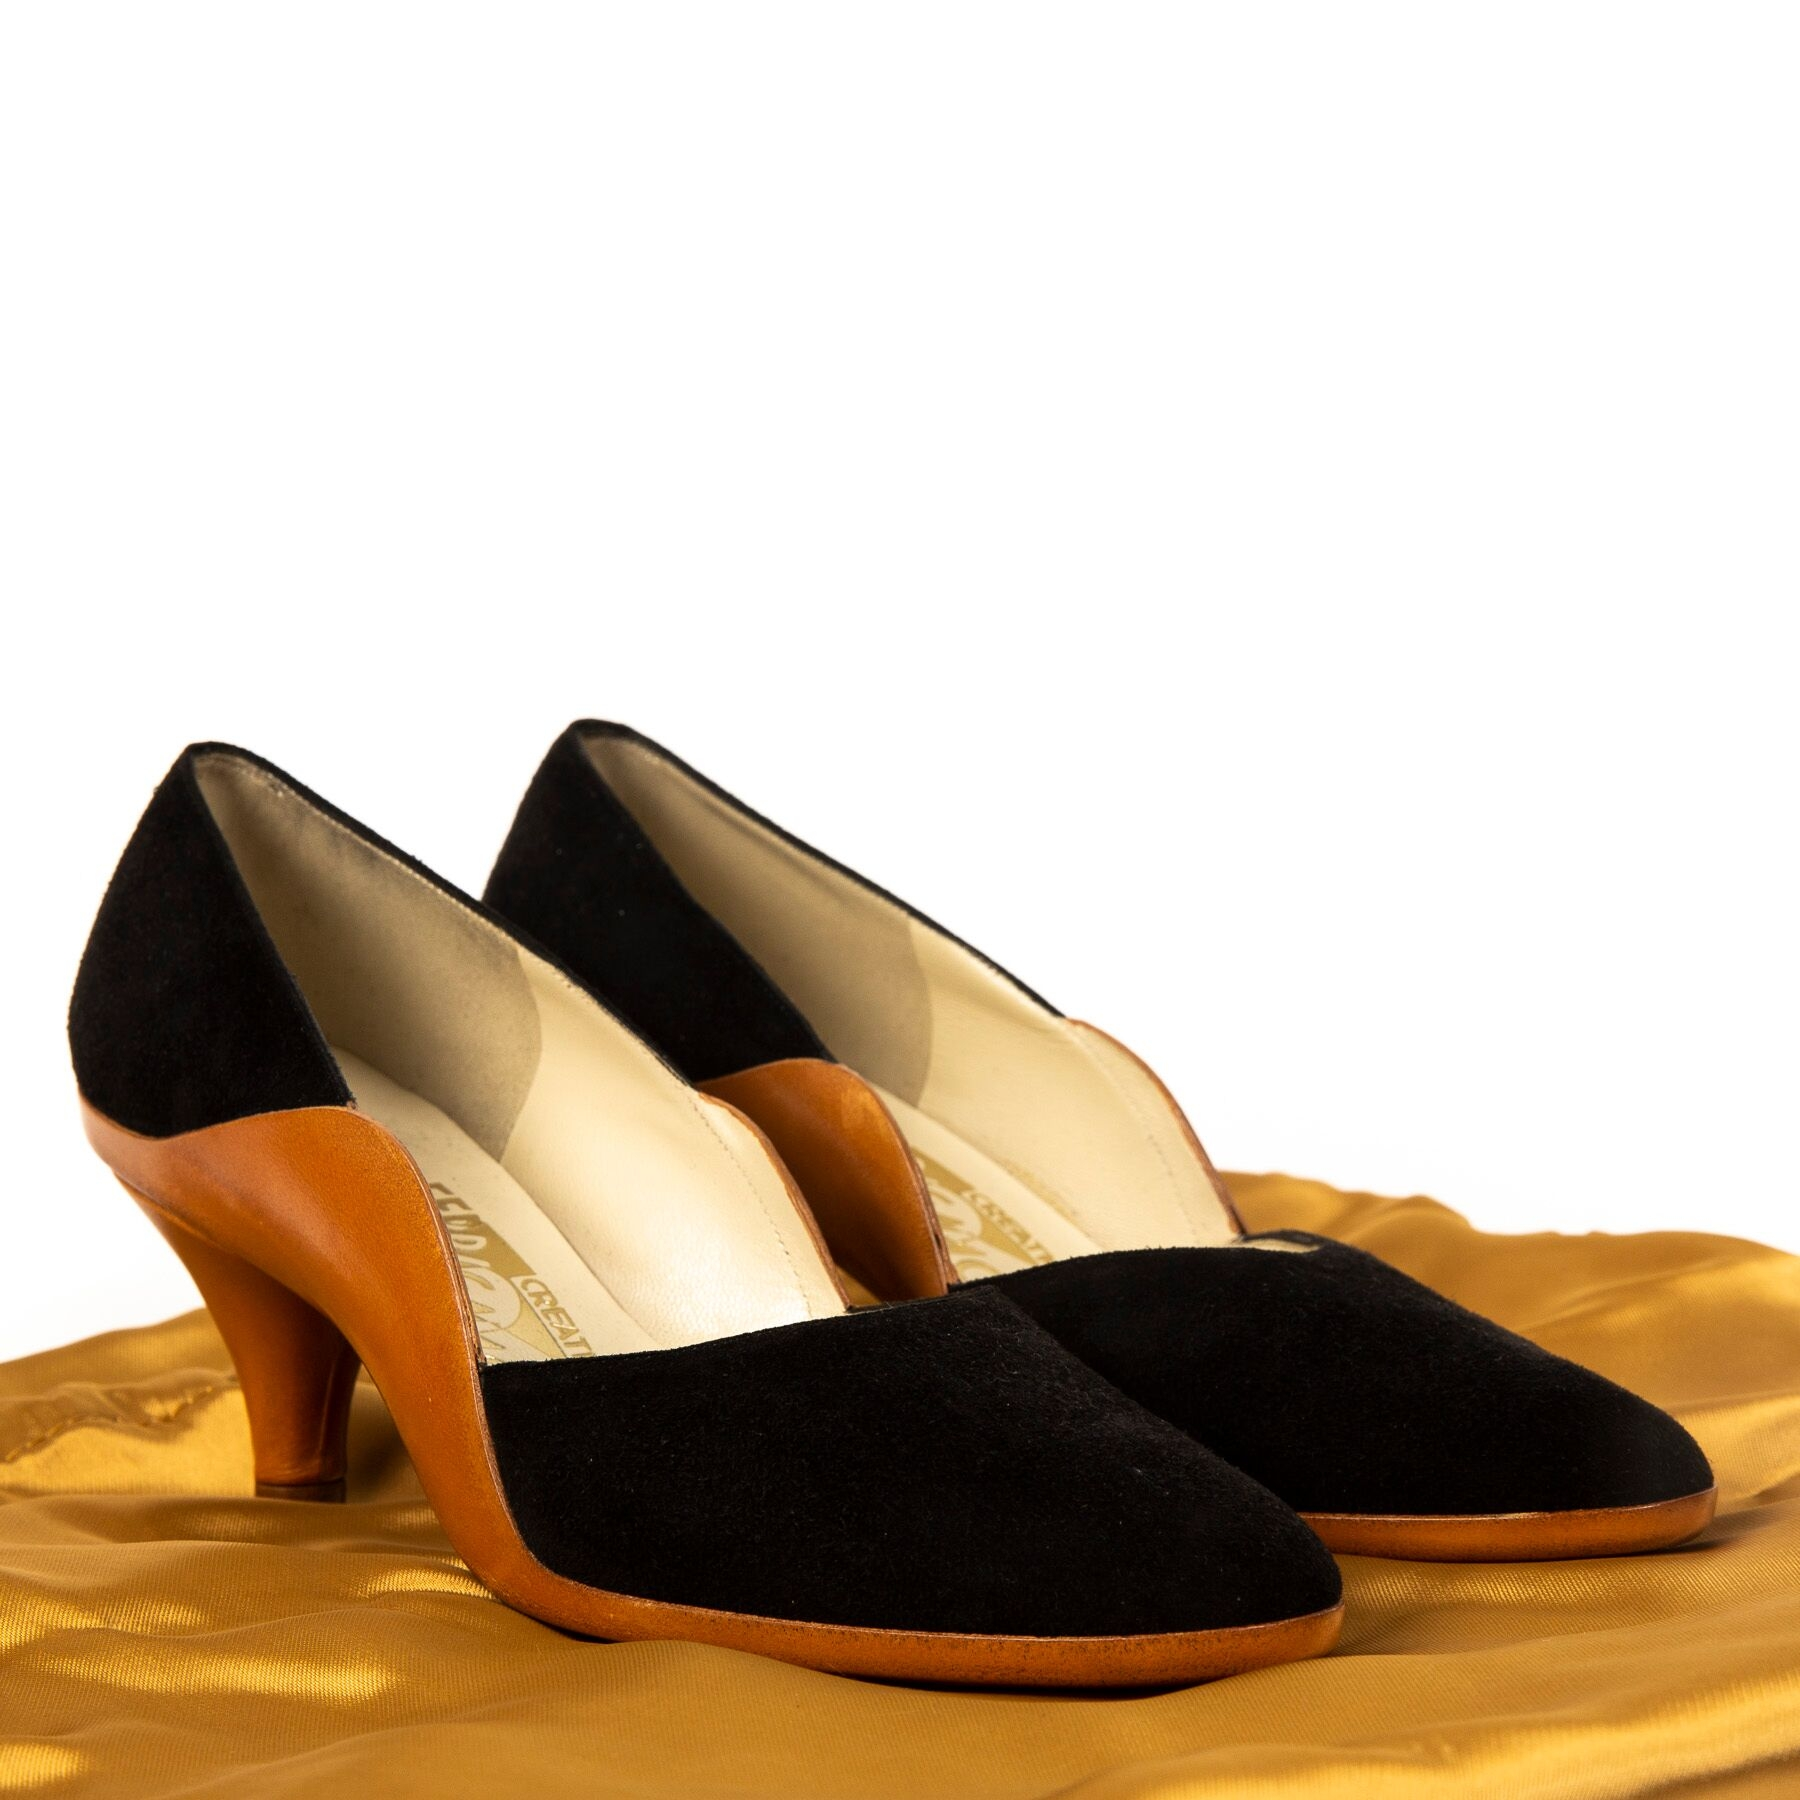 Buy authentic secondhand Salvatore Farragamo pumps at Labellov vintage webshop for the lowest price